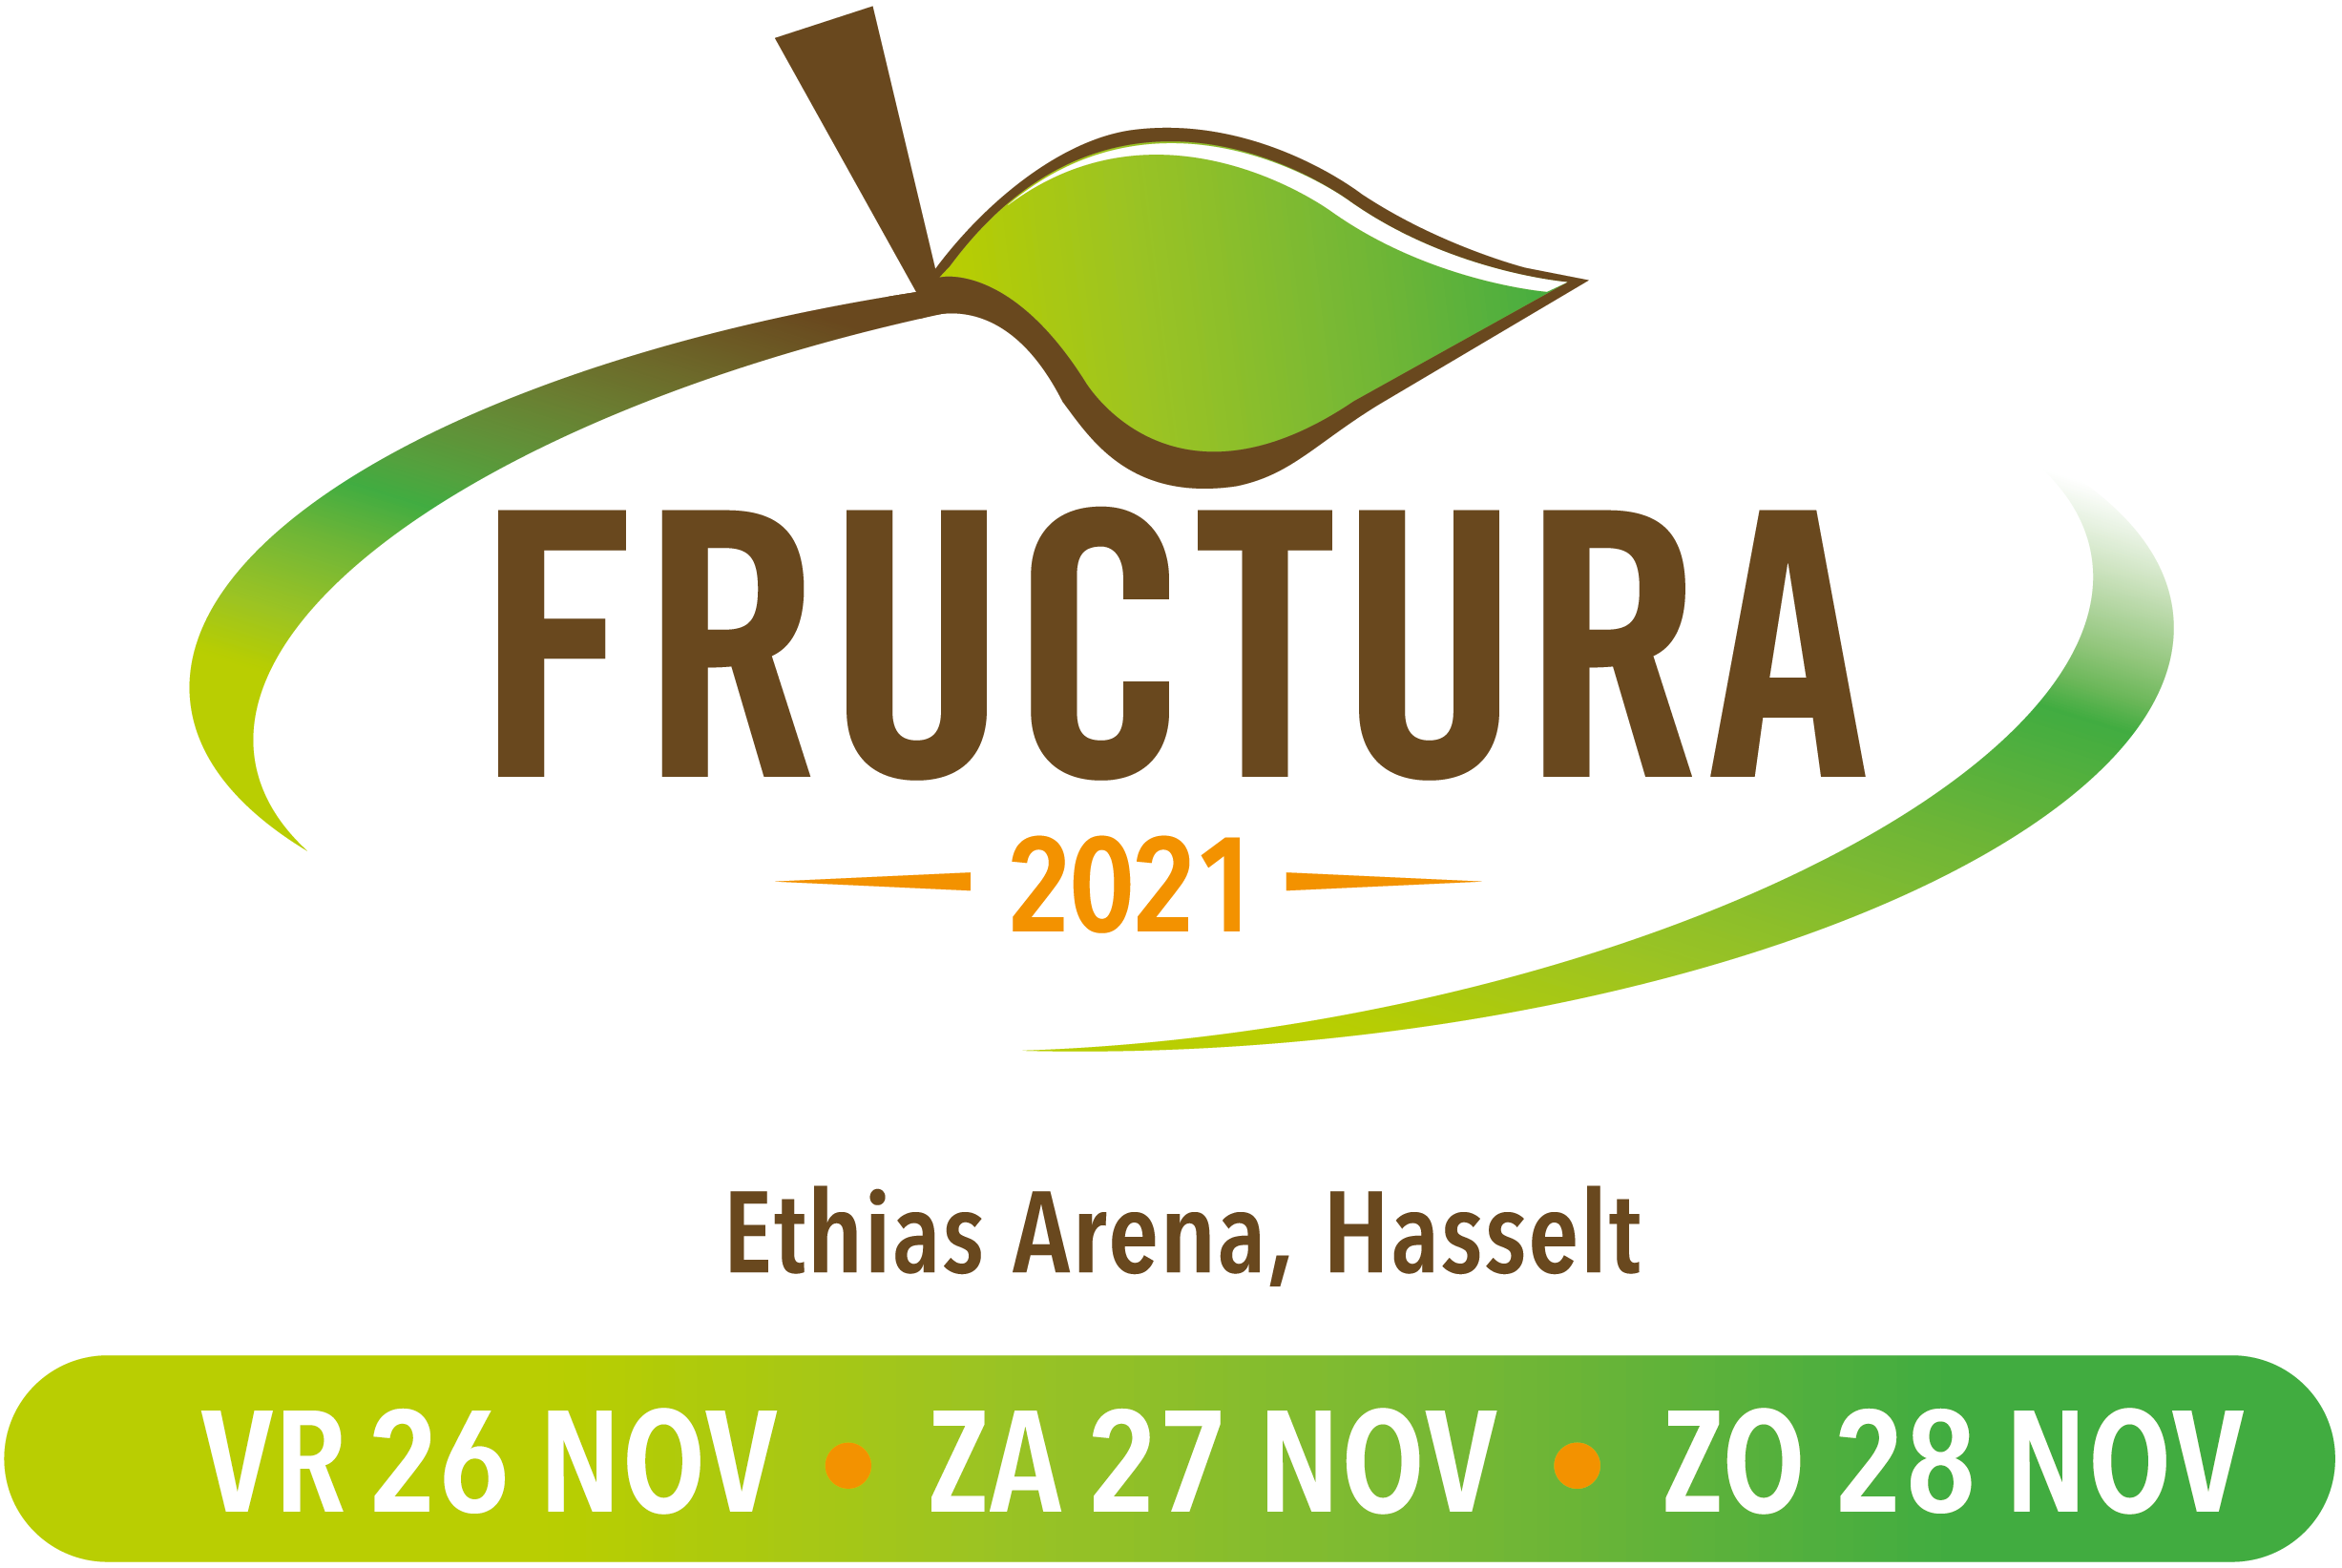 Fructura